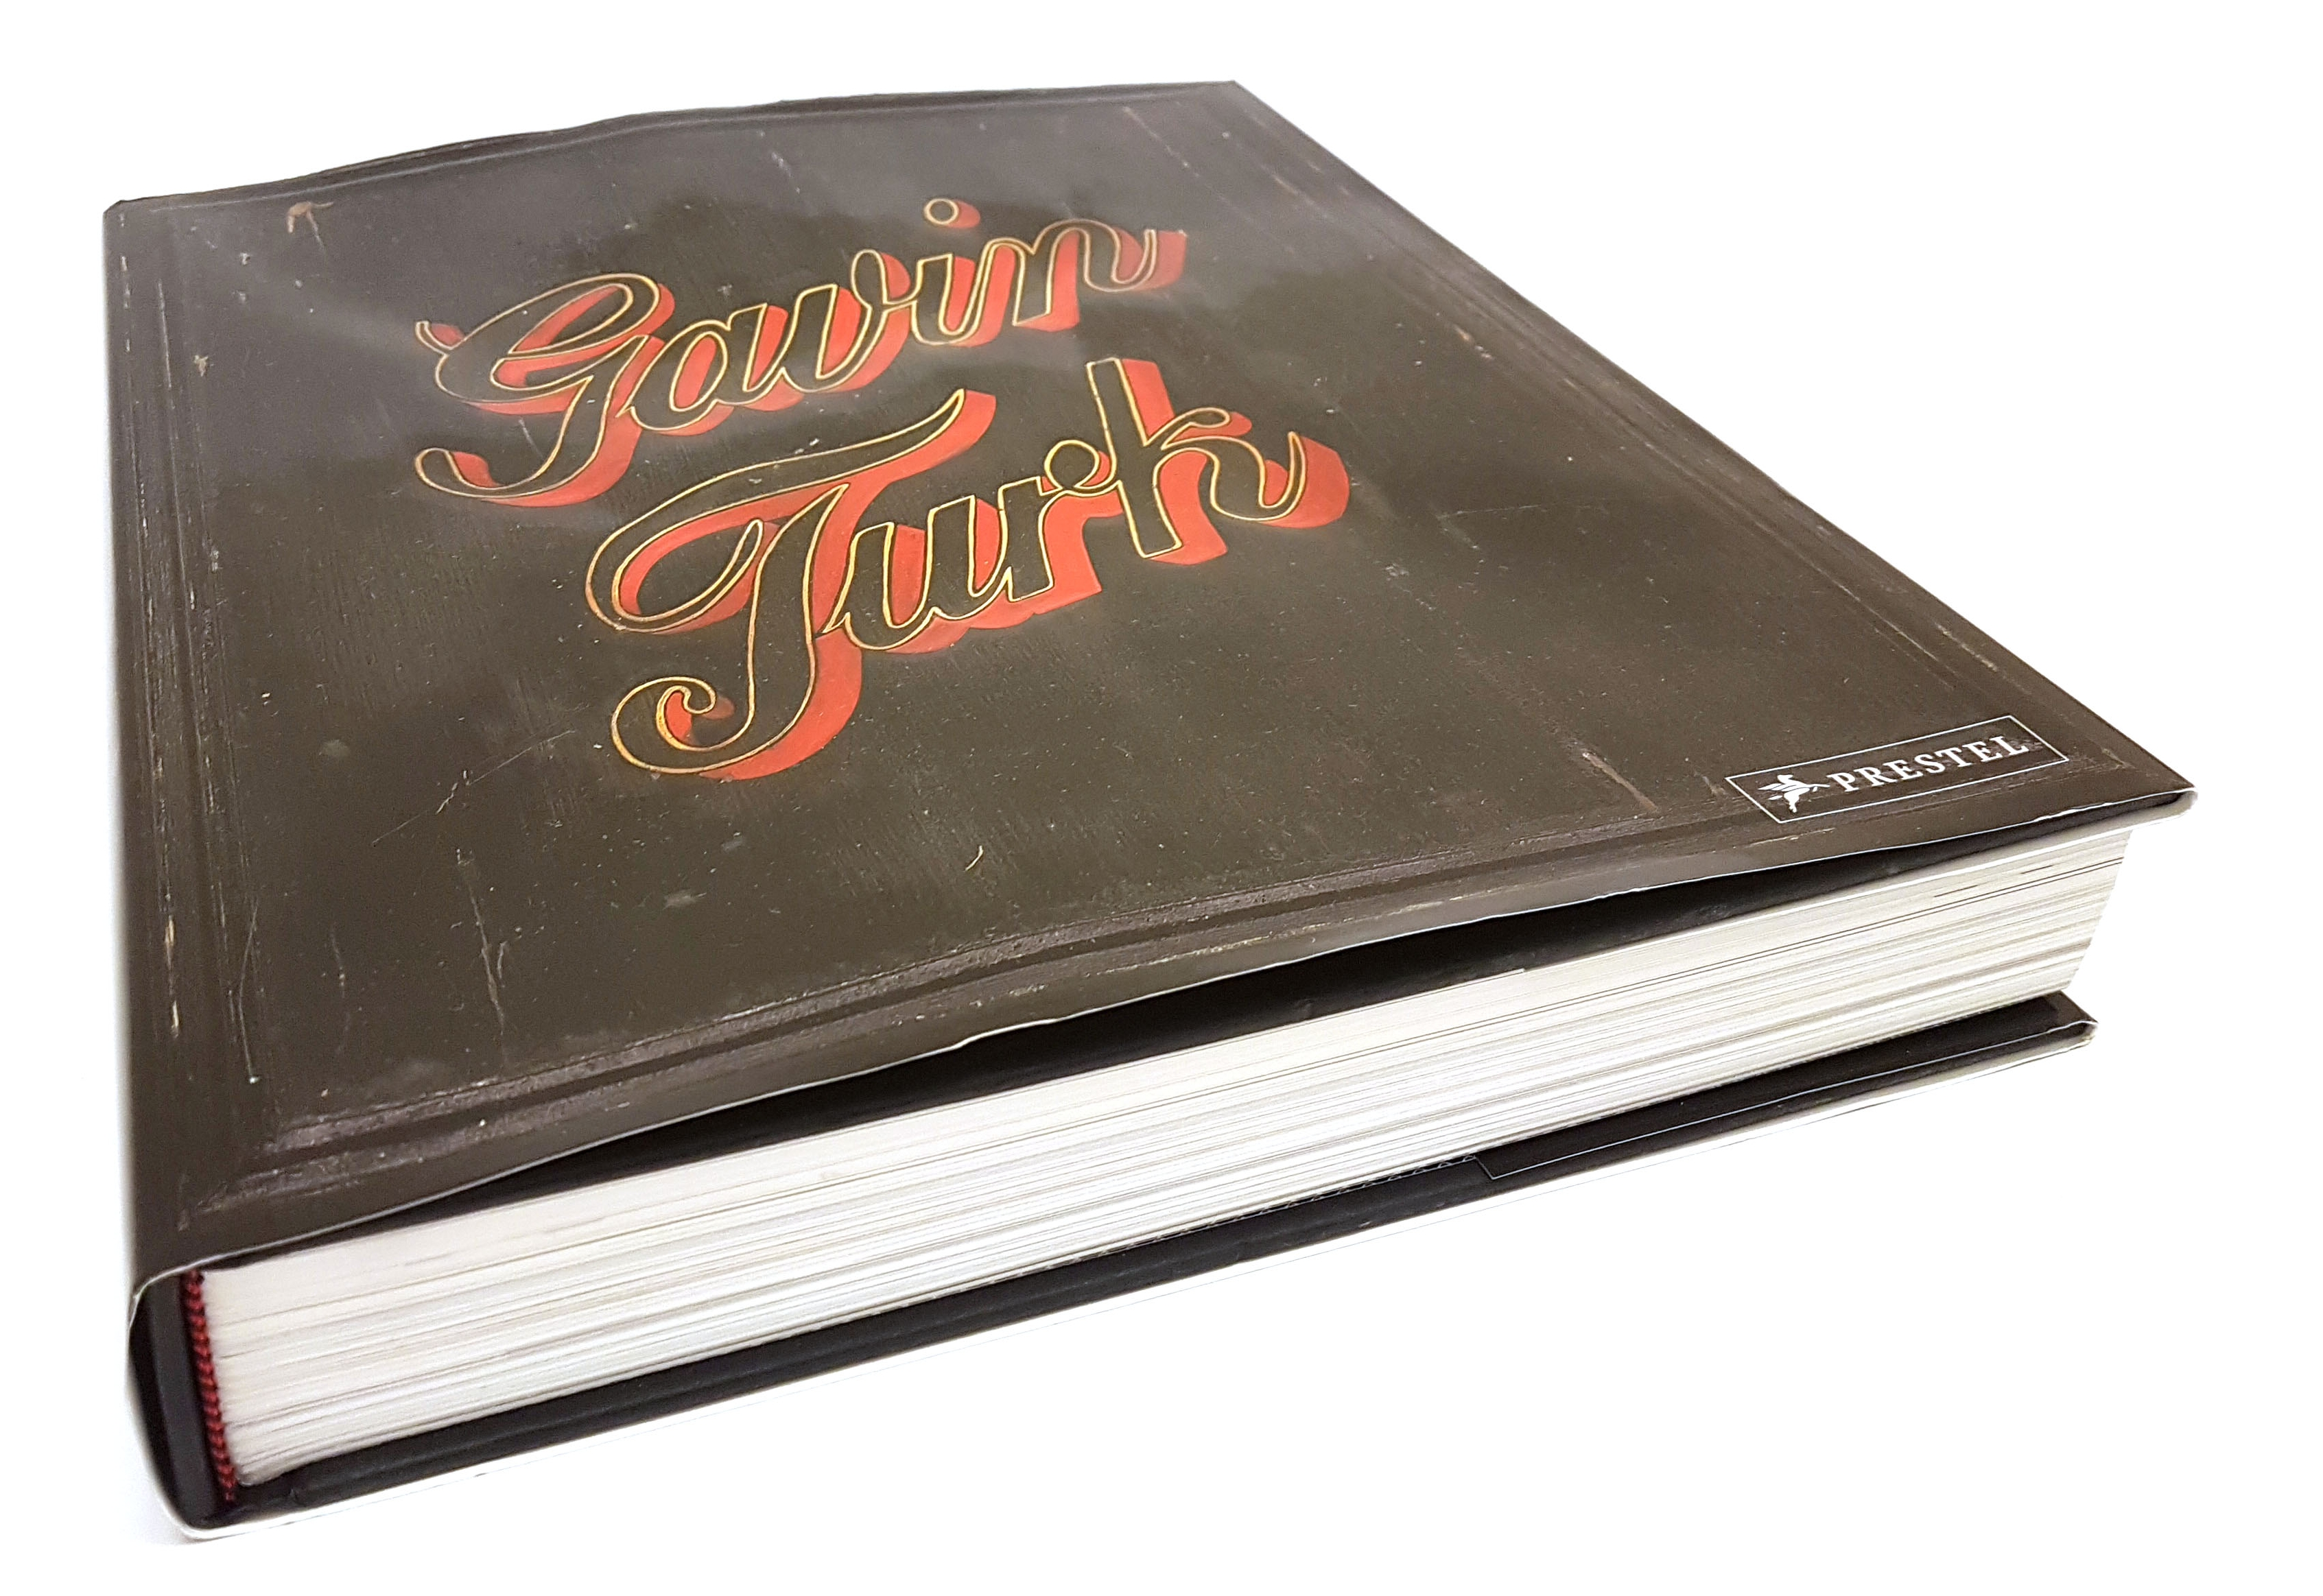 Buch / Book / Catalogue: Gavin Turk, Prestel signed